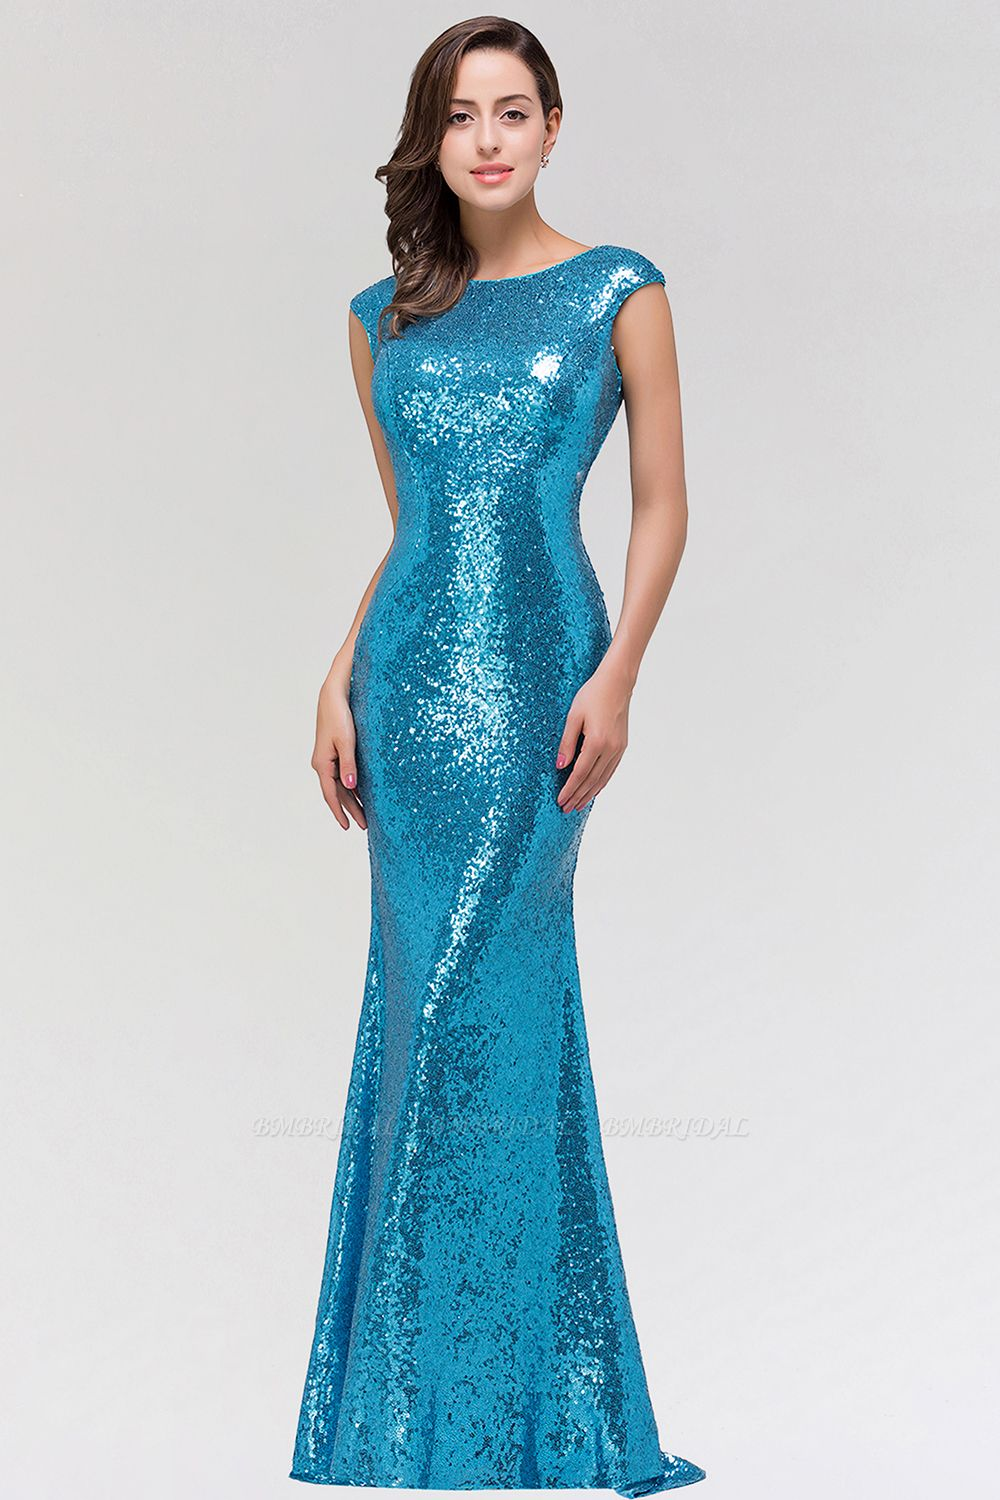 Mermaid Sequined Bridesmaid Dress